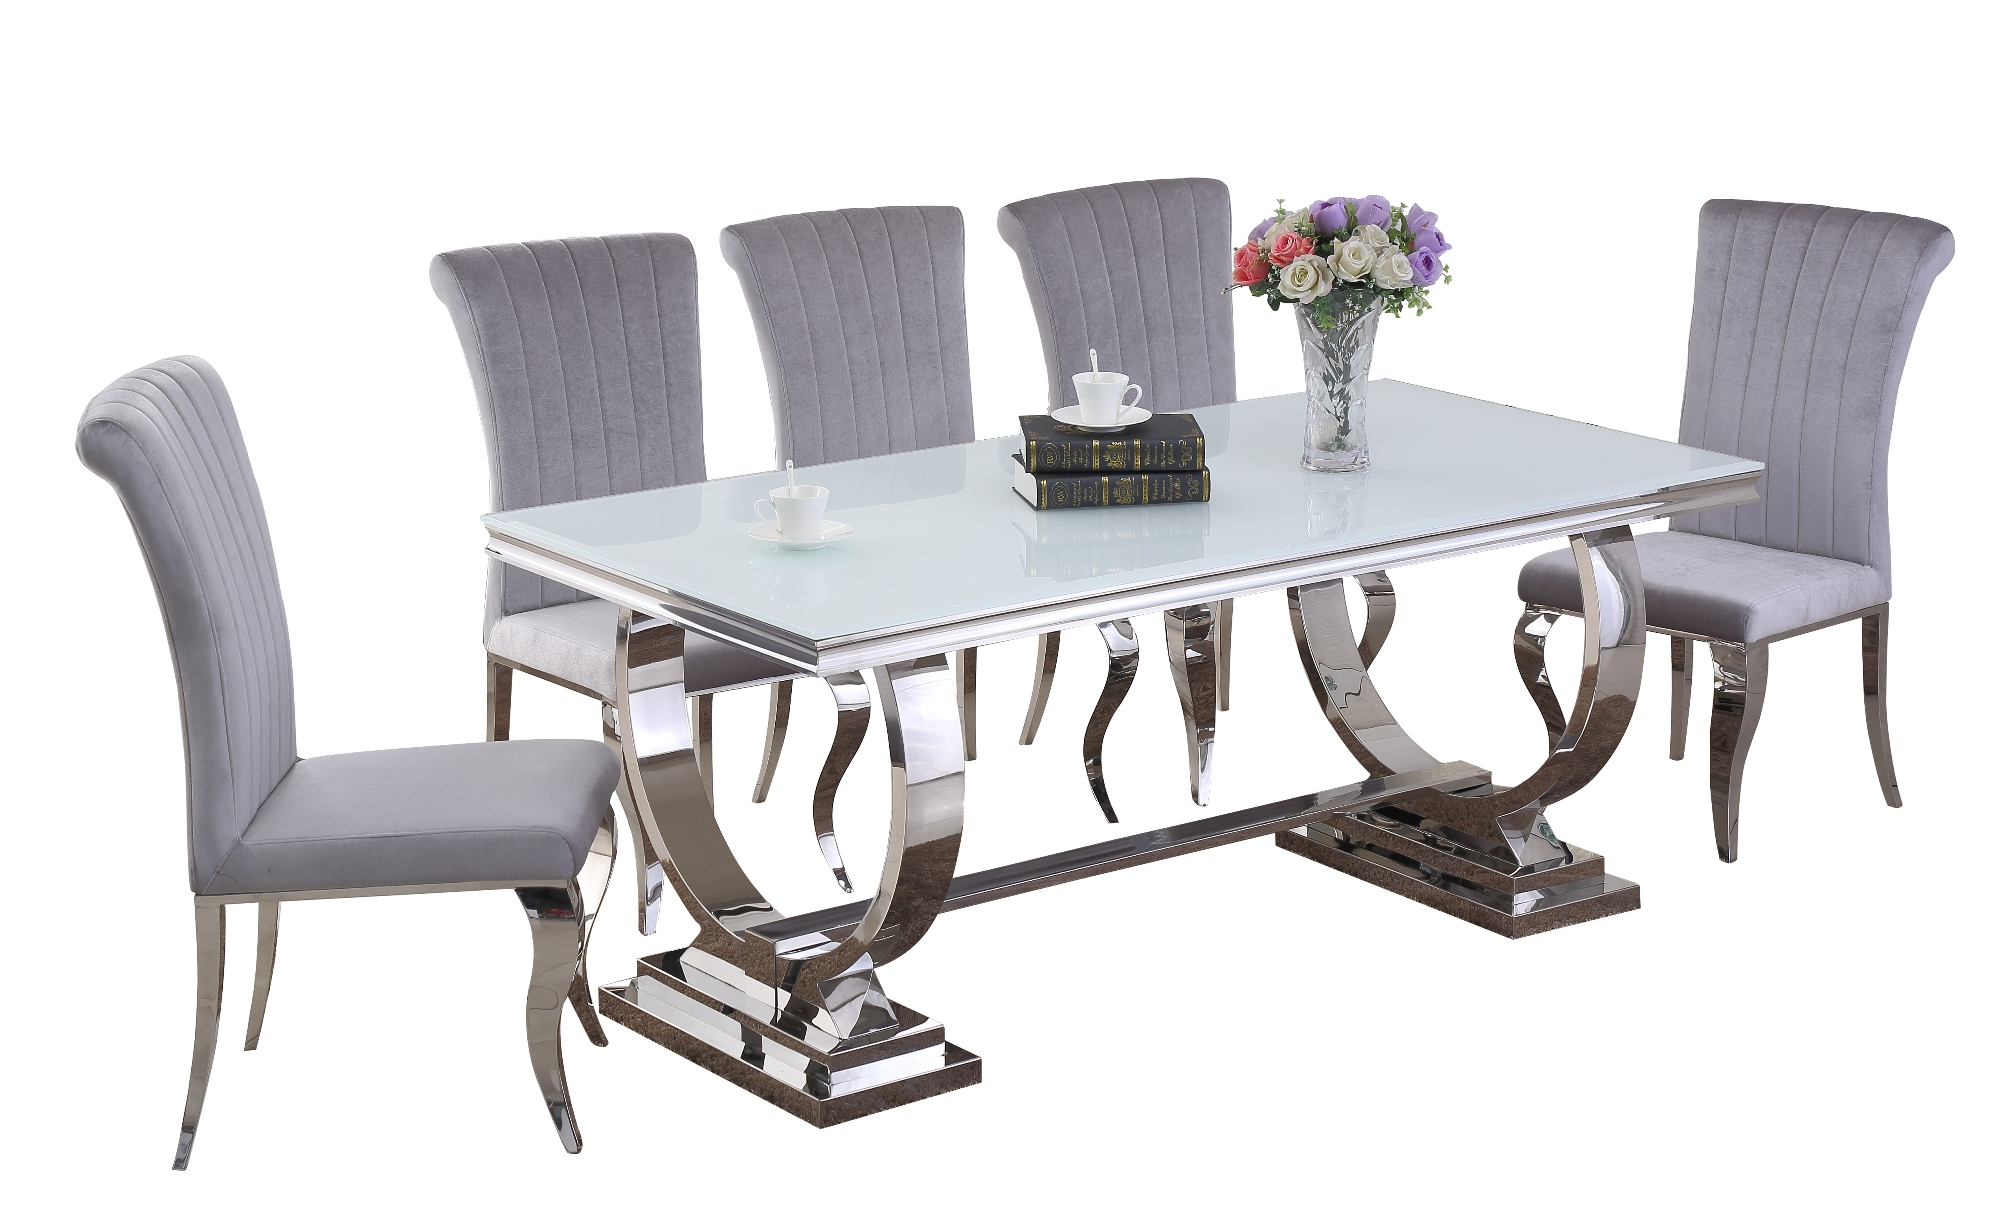 Venice White Dining Table DT-813WH & Liyana Grey Chair CH-891GR (white background)